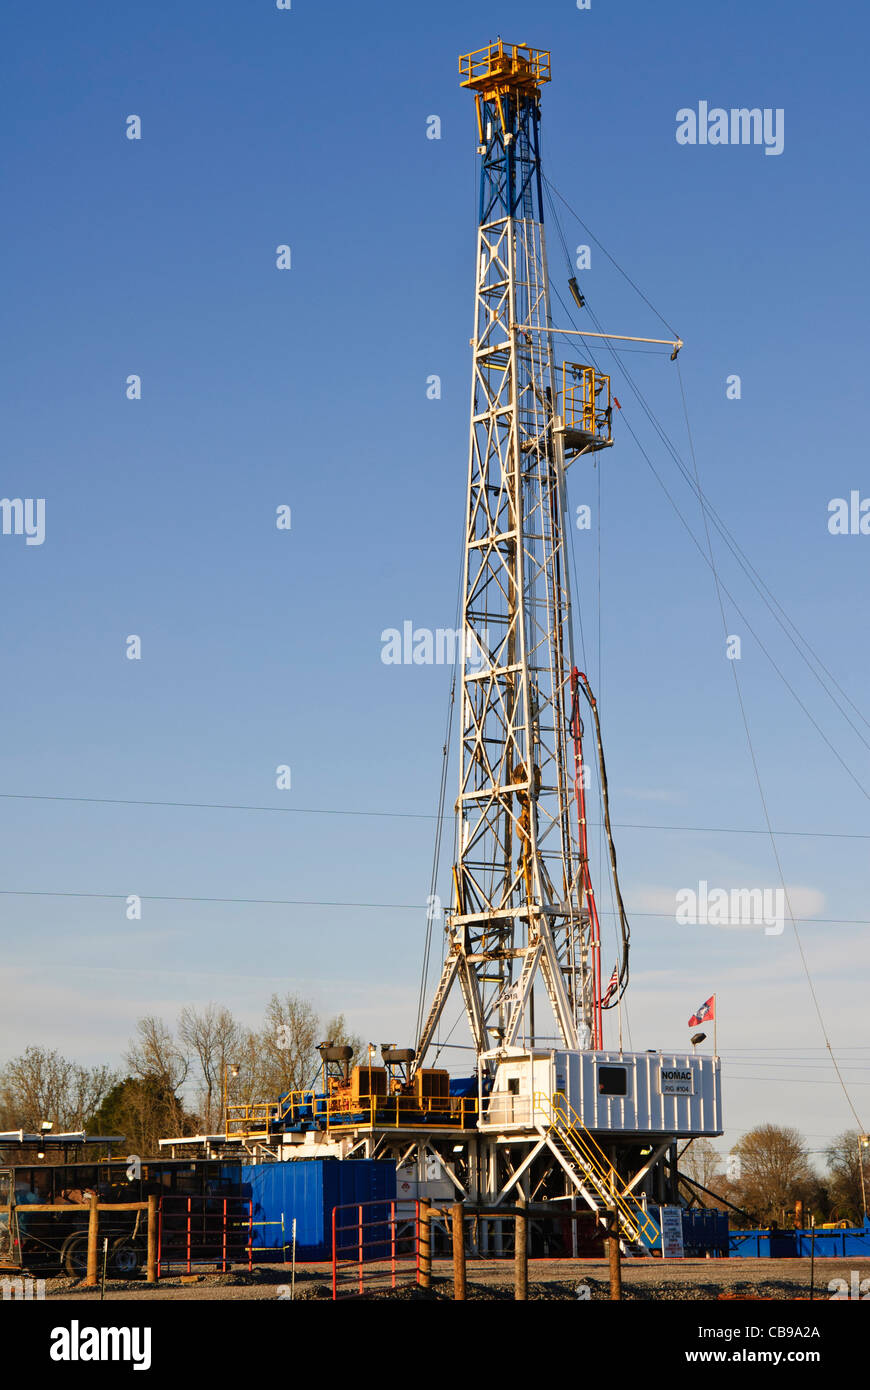 Drilling rig at a shale gas drill site in Guy, Arkansas, USA. - Stock Image